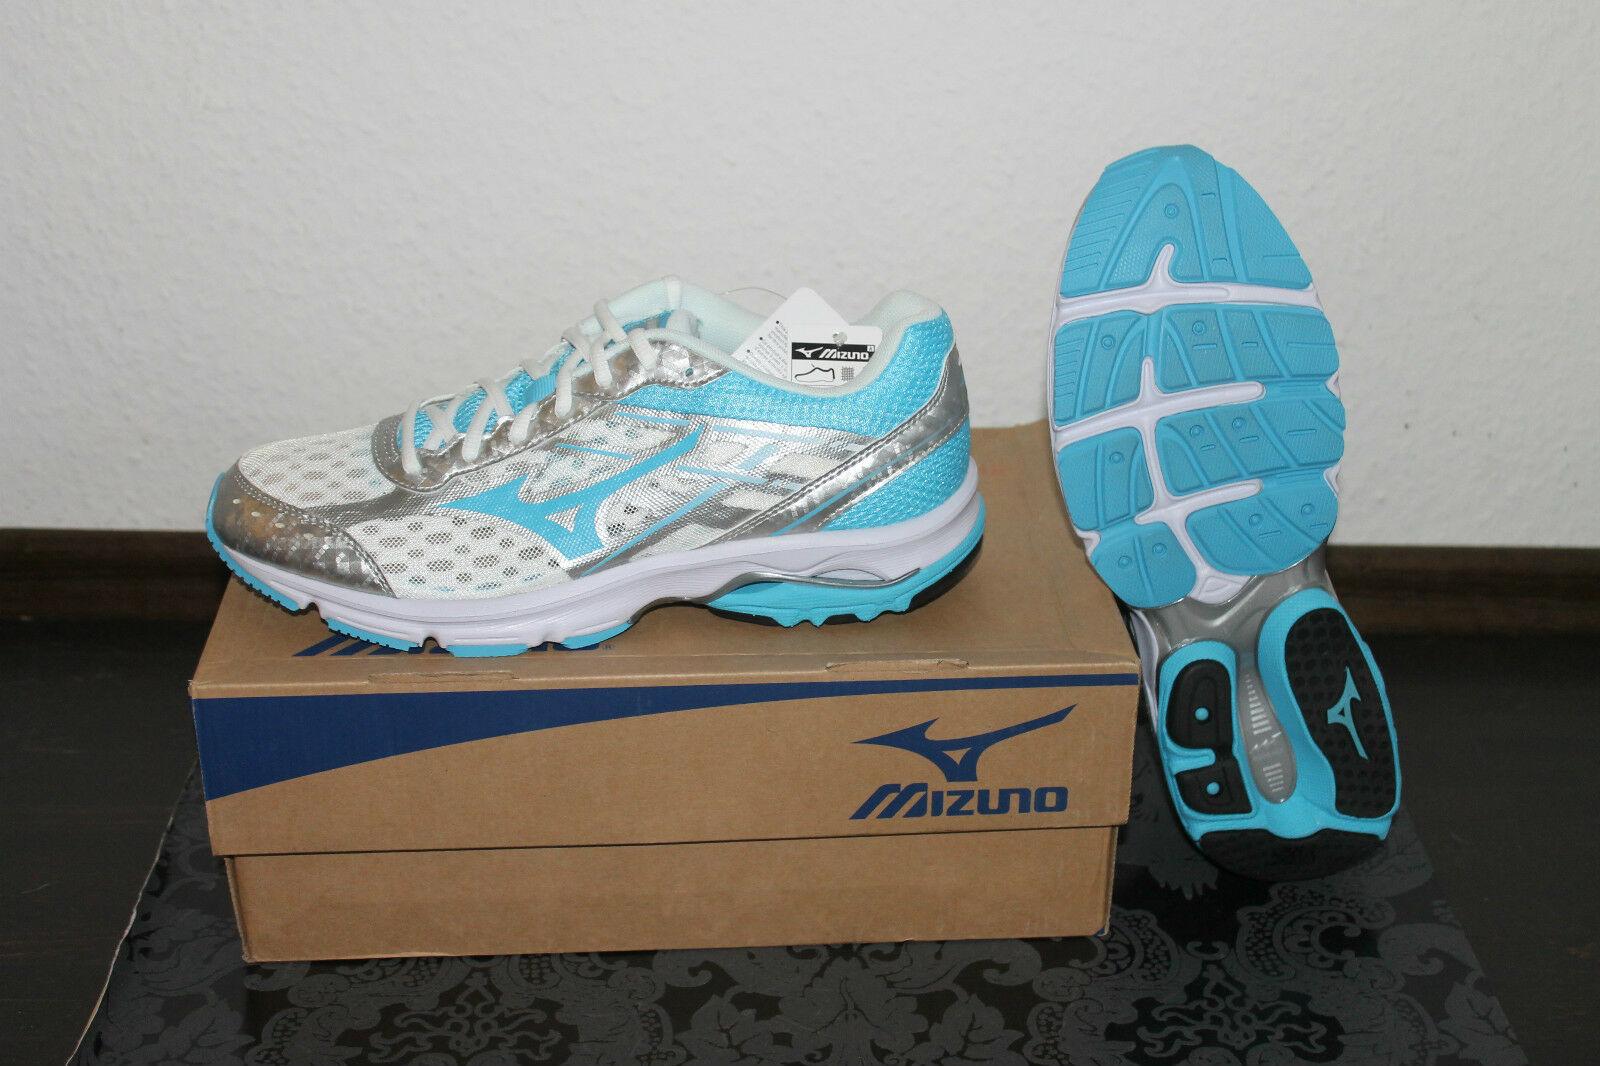 Mizuno Wave  Advance Women's Running Running shoes blueee All Size New With Box  low-key luxury connotation